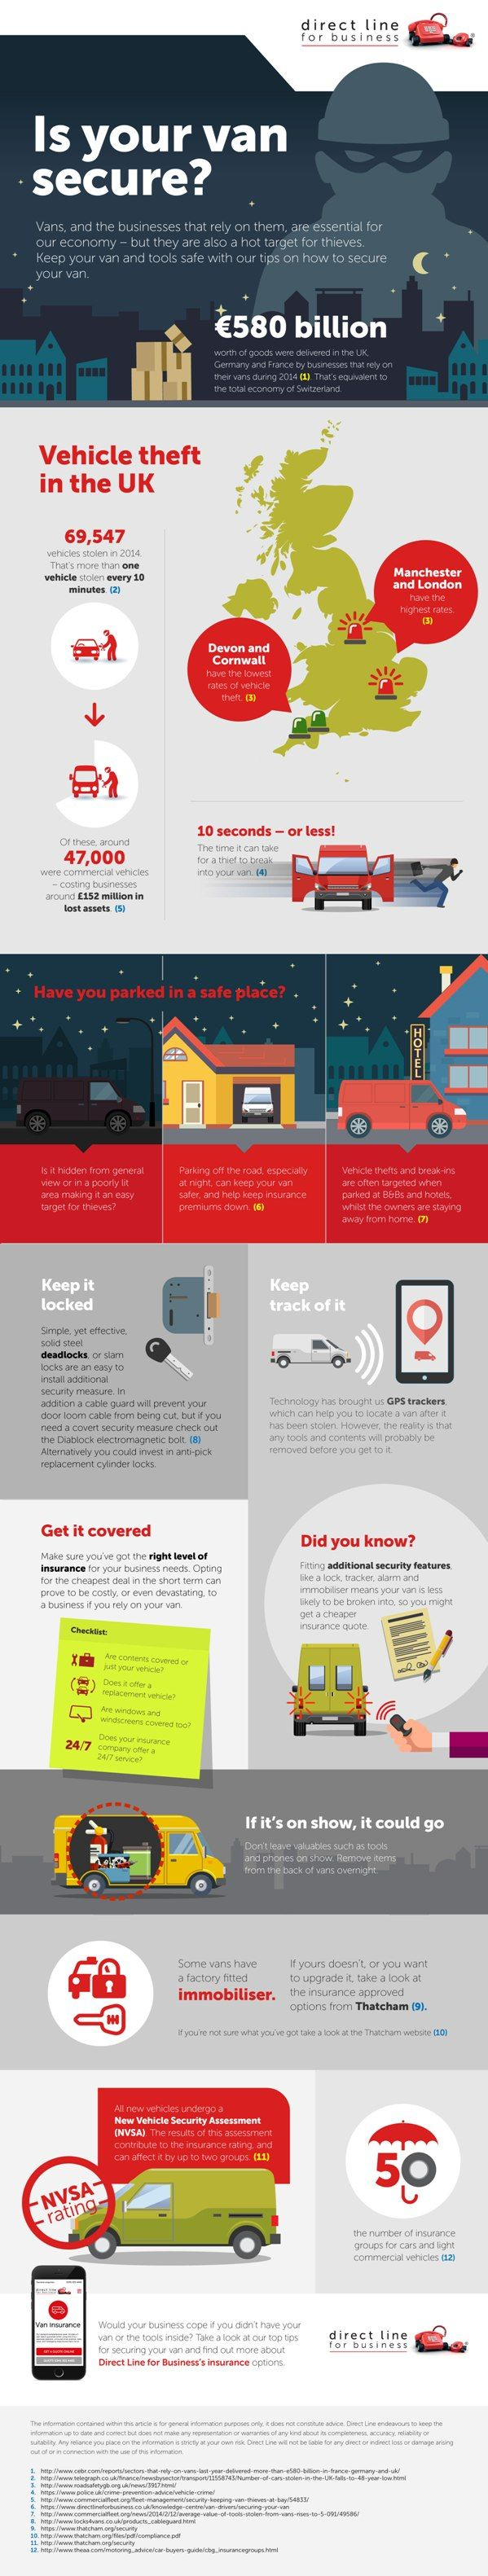 Is your van secure? #infographic